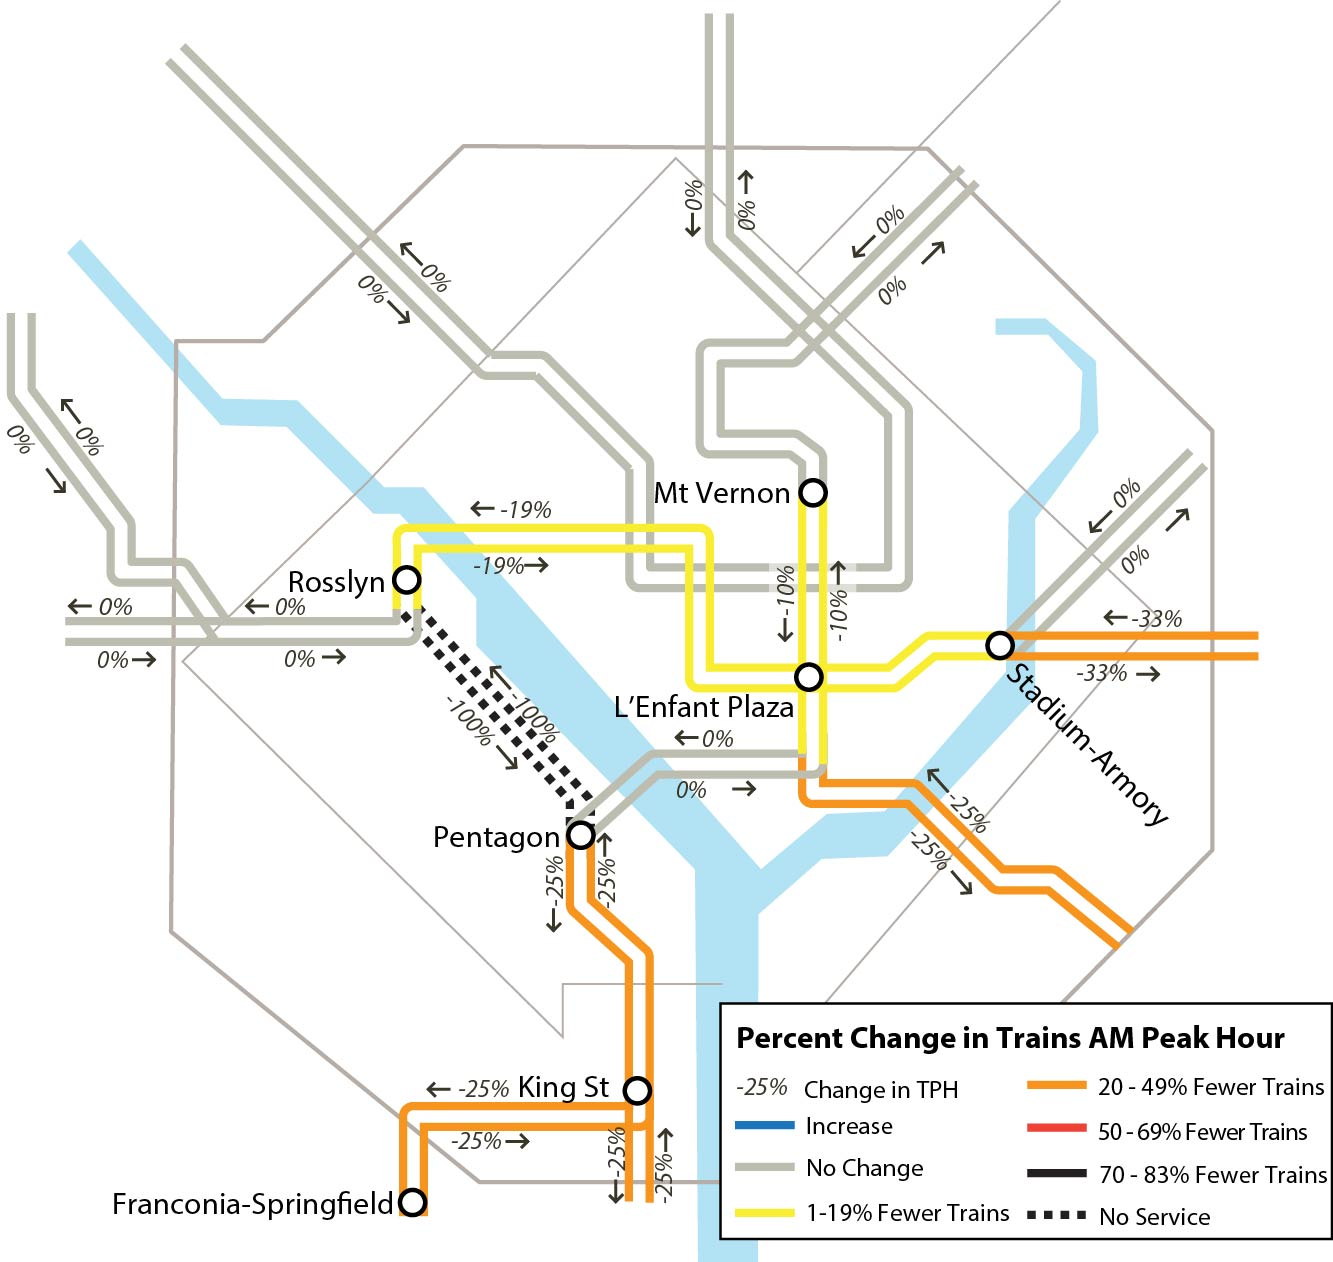 Dc Metro Map Yellow Line.Metro Safetrack Surge 12 Blue Line Rosslyn To Pentagon Begins